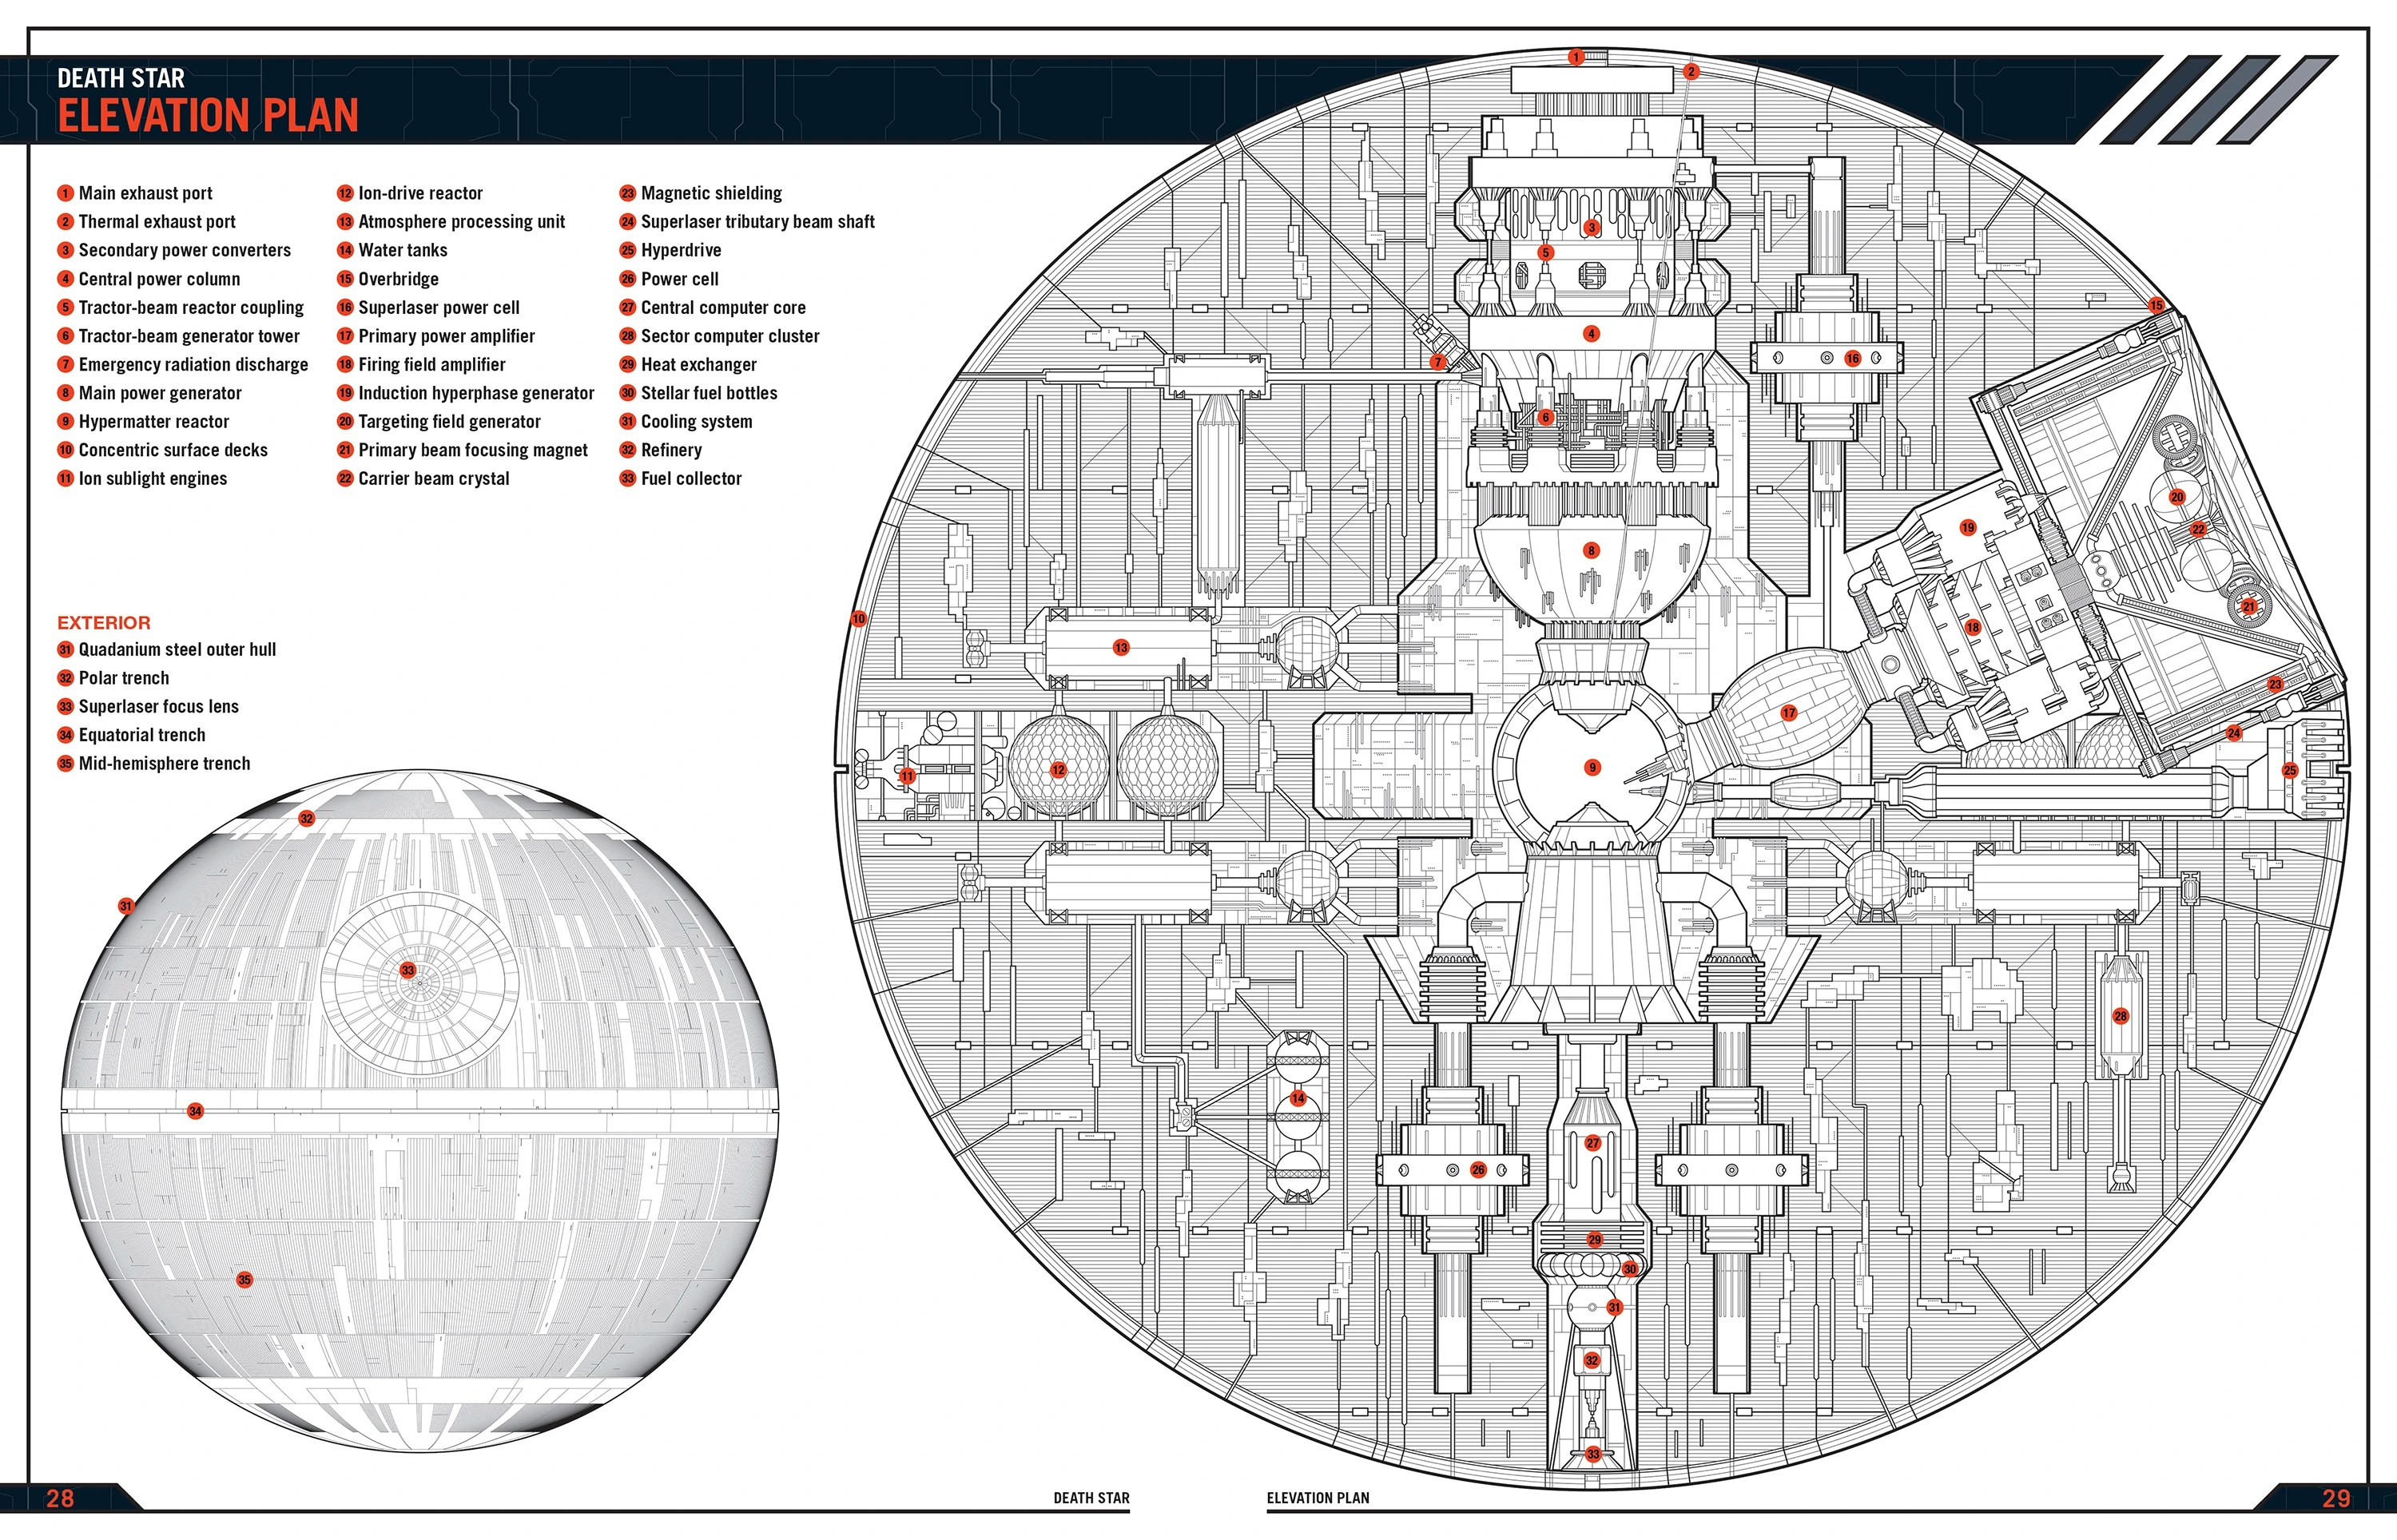 https://i2.wp.com/img4.wikia.nocookie.net/__cb20131105191248/starwars/images/7/7d/Death_Star_Owner%27s_Technical_Manual_blueprints.jpg